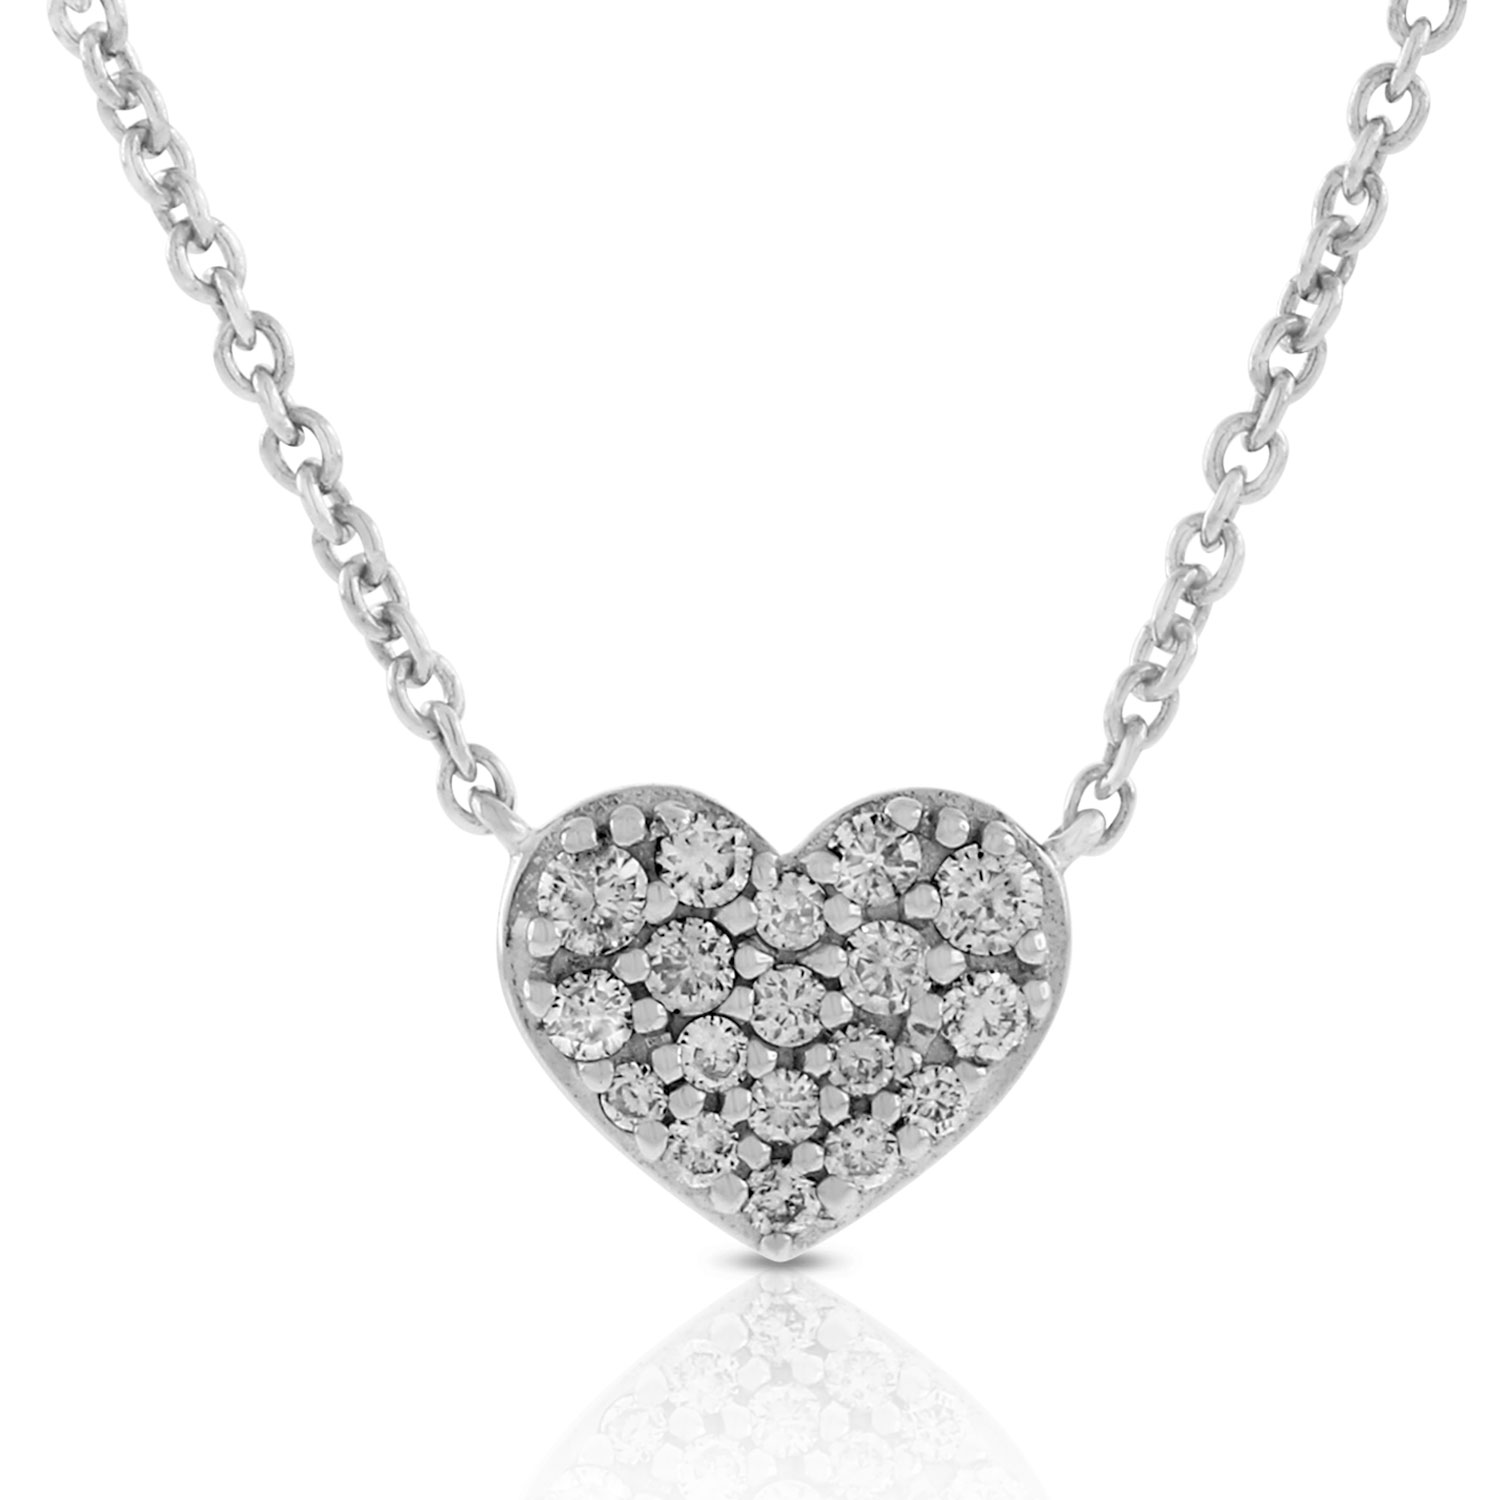 Getting a Design in Diamond Heart Necklace is Lovely